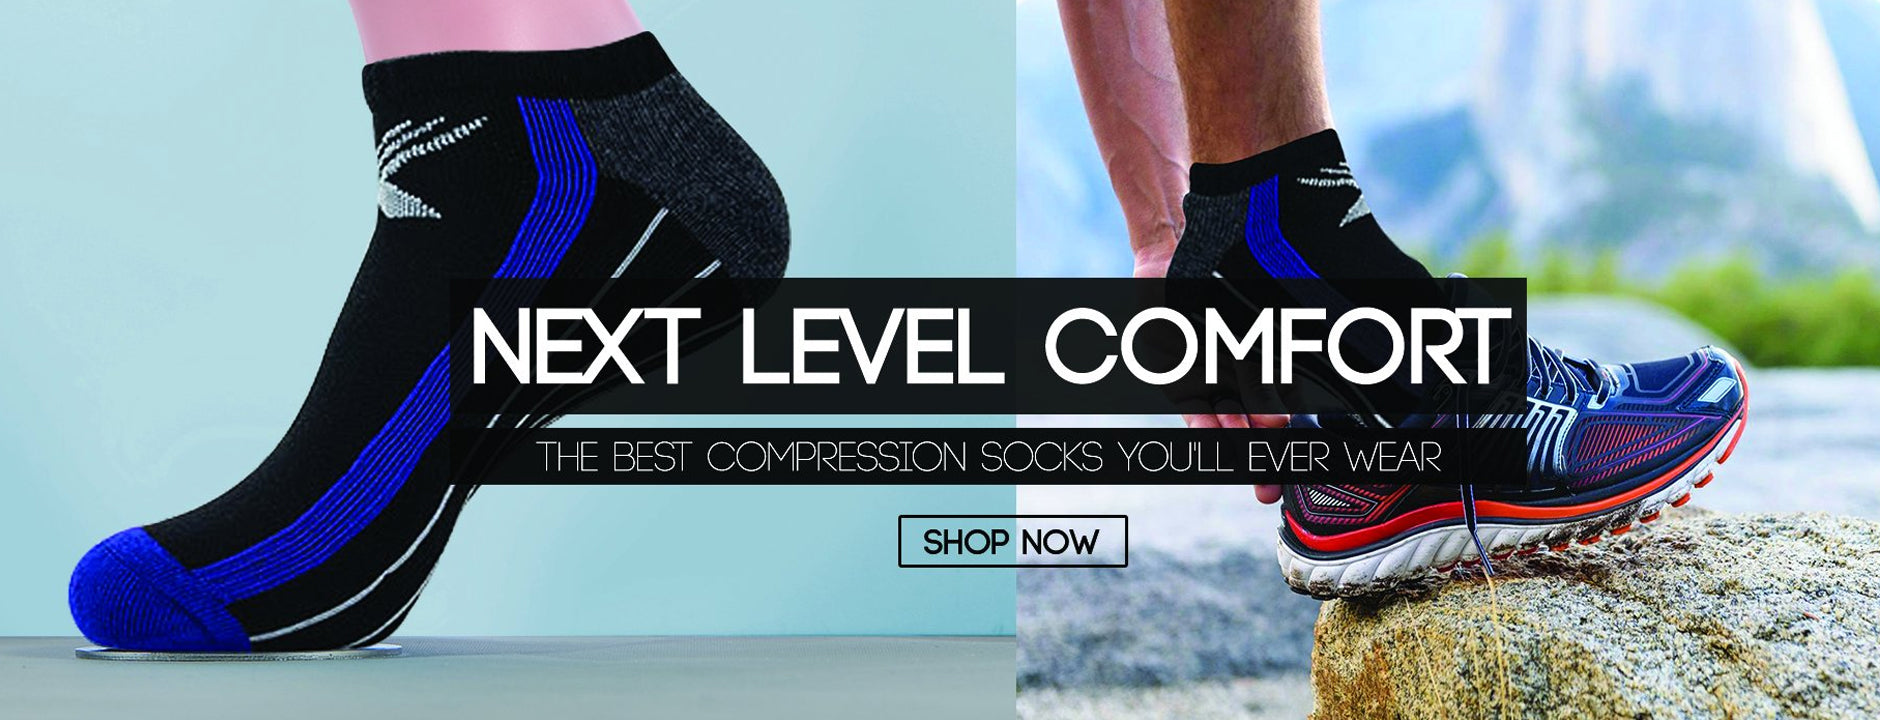 8bfe020dc2 Extreme Fit | Compression Socks | Sports Accessories